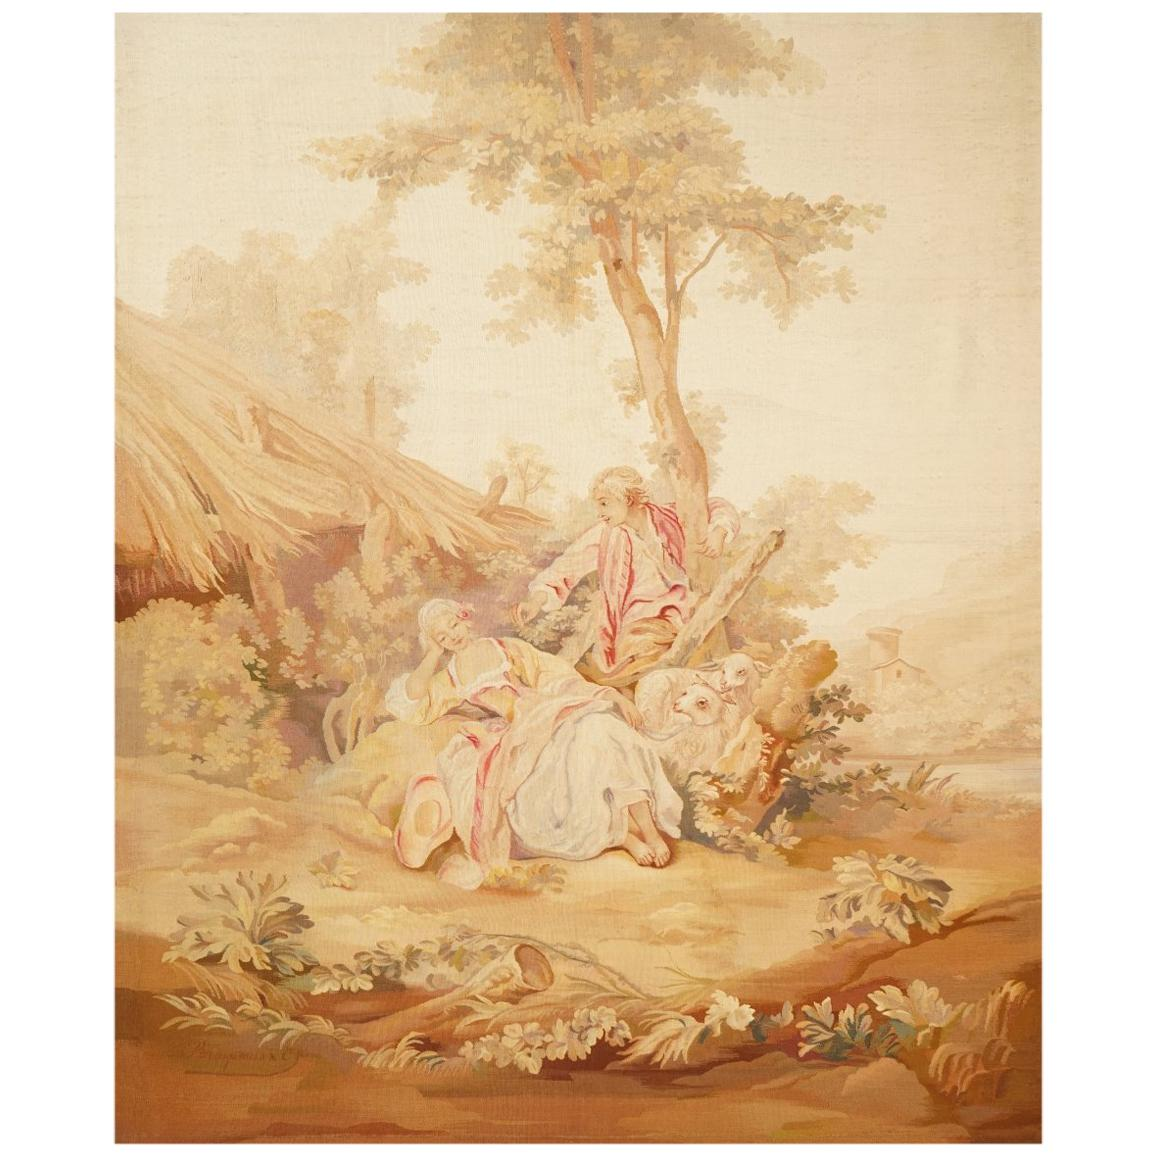 19th Century Antique Tapestry from Aubusson, a Romantic Scene